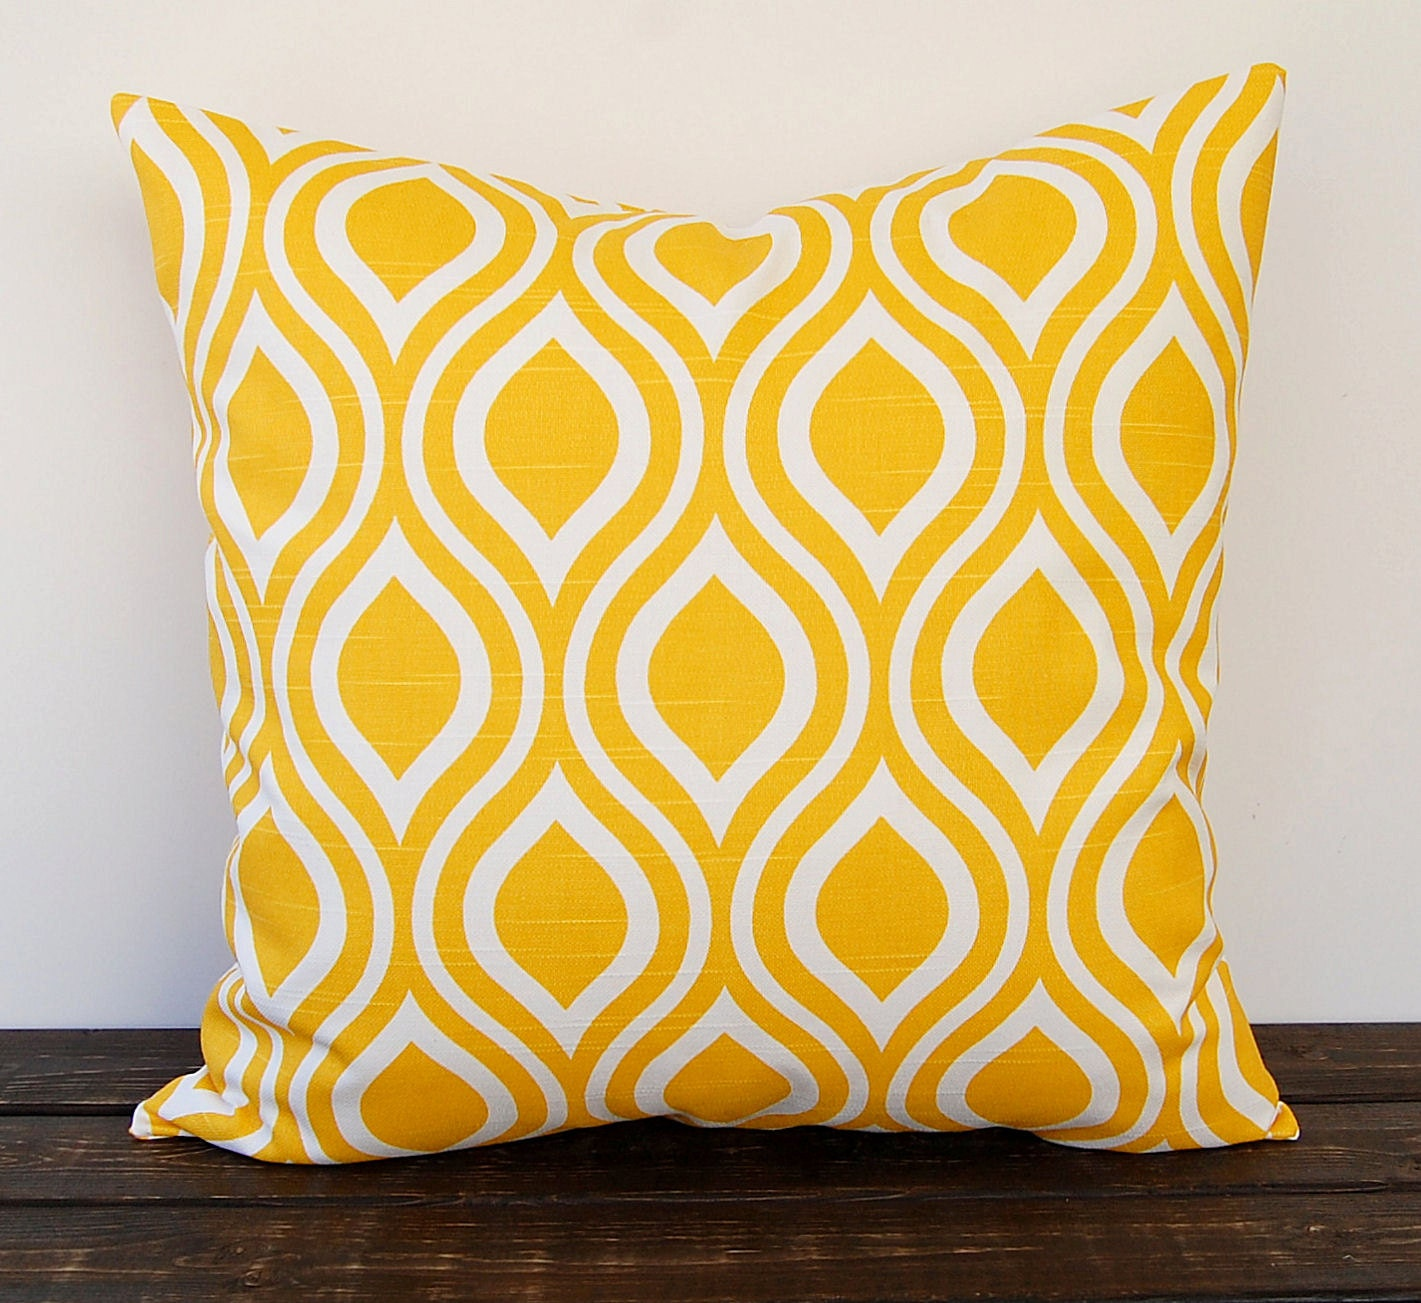 Image Gallery Mustard Pillows